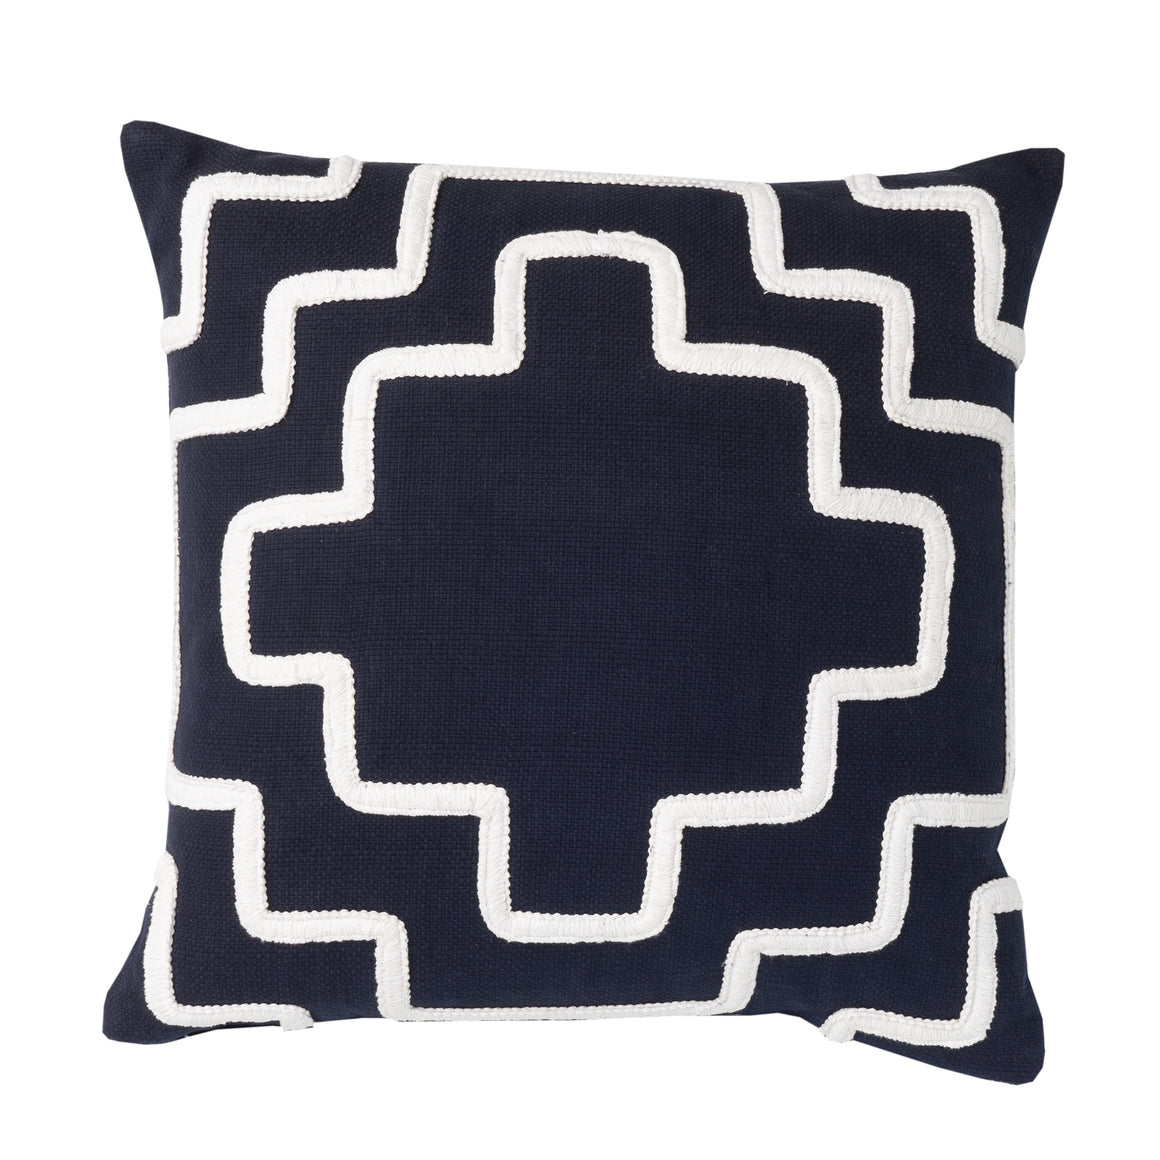 Textured Navy Cushion with White Patterned Detail